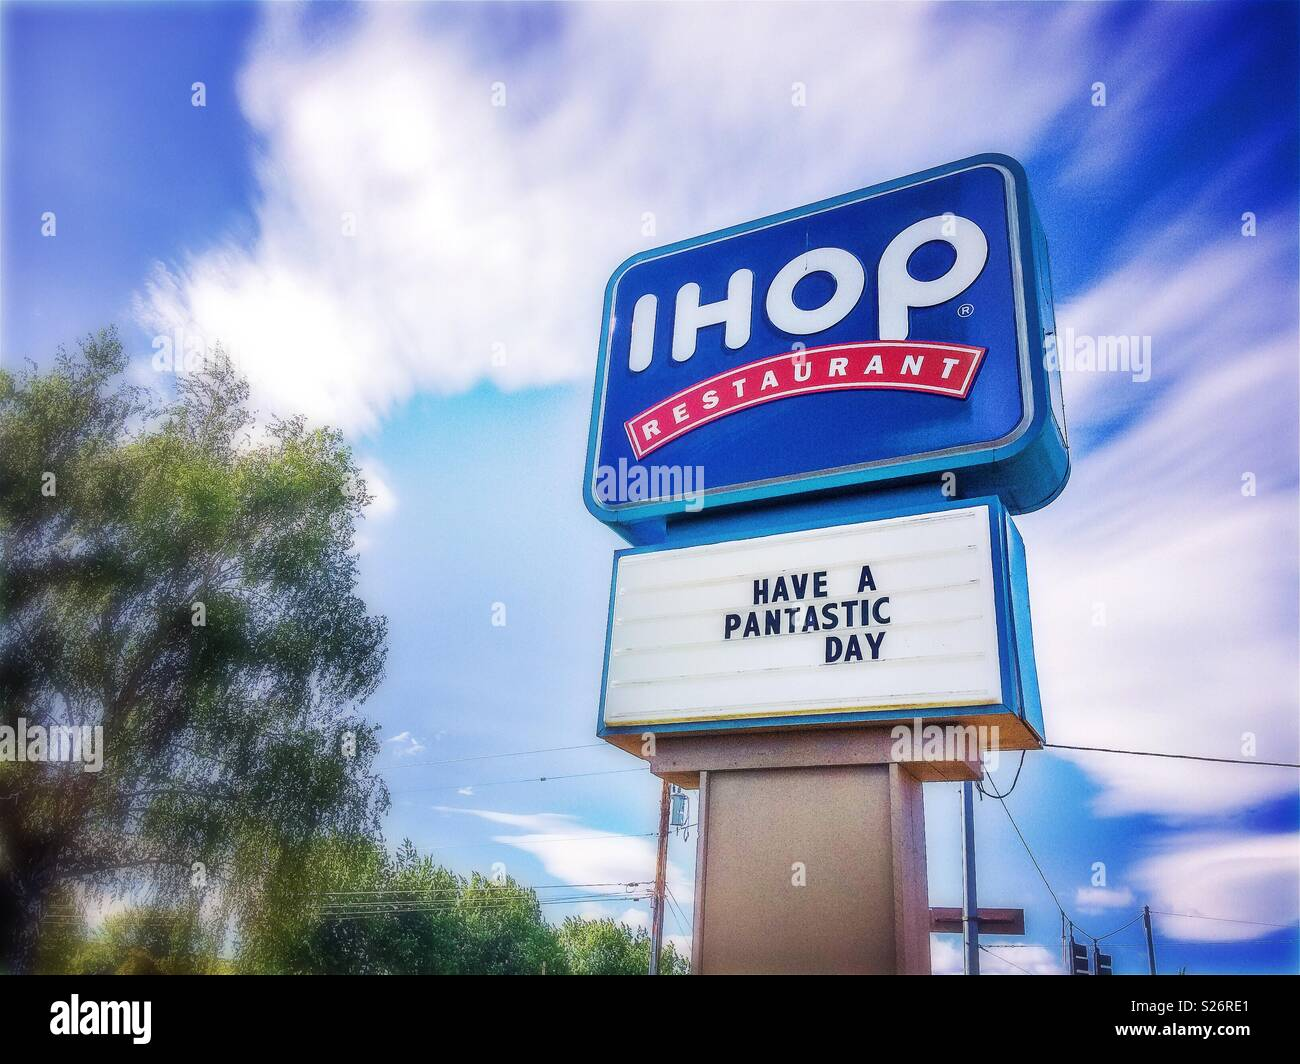 IHOP Restaurant sign with logo and play on words: have a pantastic day, Bend, Oregon, USA. - Stock Image